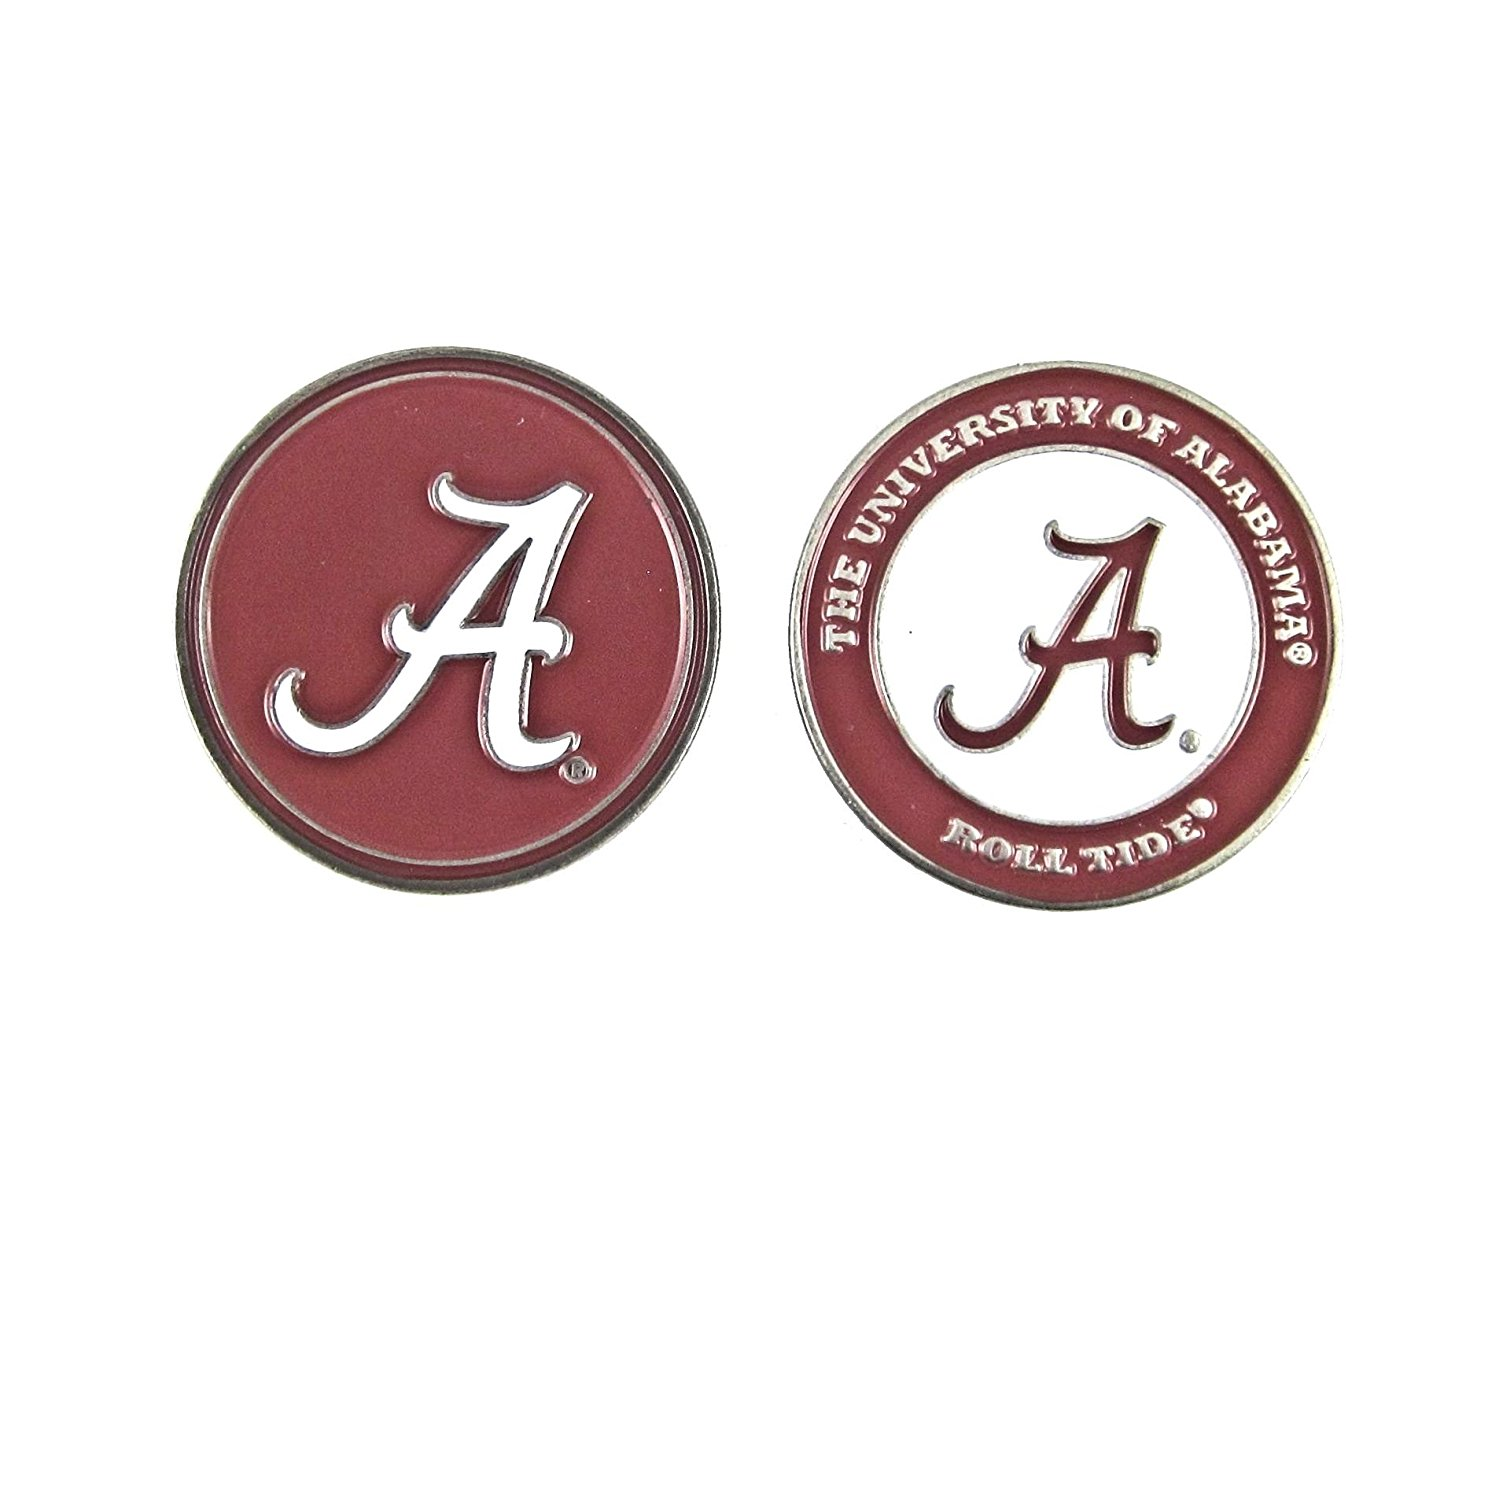 Alabama Crimson Tide Double-Sided Golf Ball Marker, University of Alabama Golf Ball Marker By Waggle Pro Shop,USA